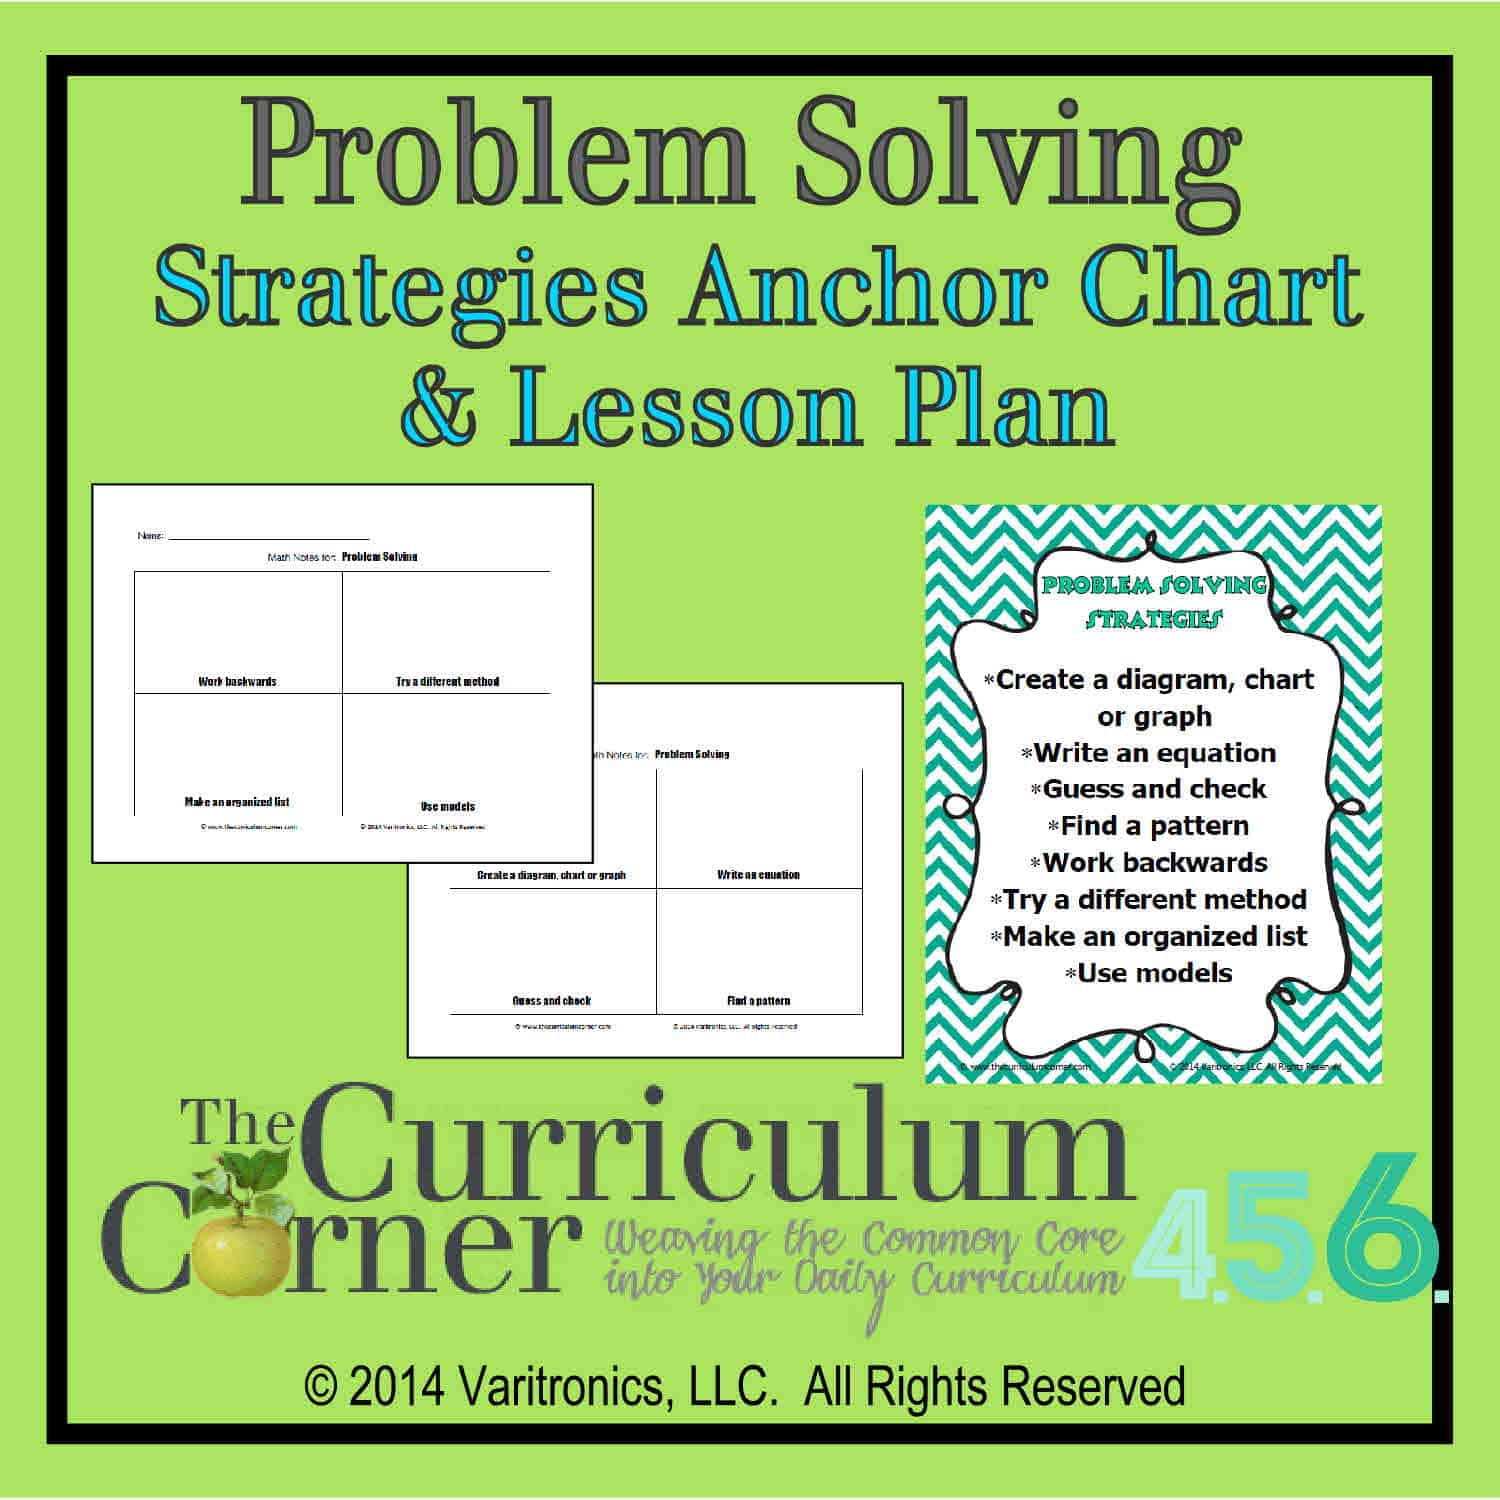 Problem Solving Strategies Anchor Chart & Lesson Plan